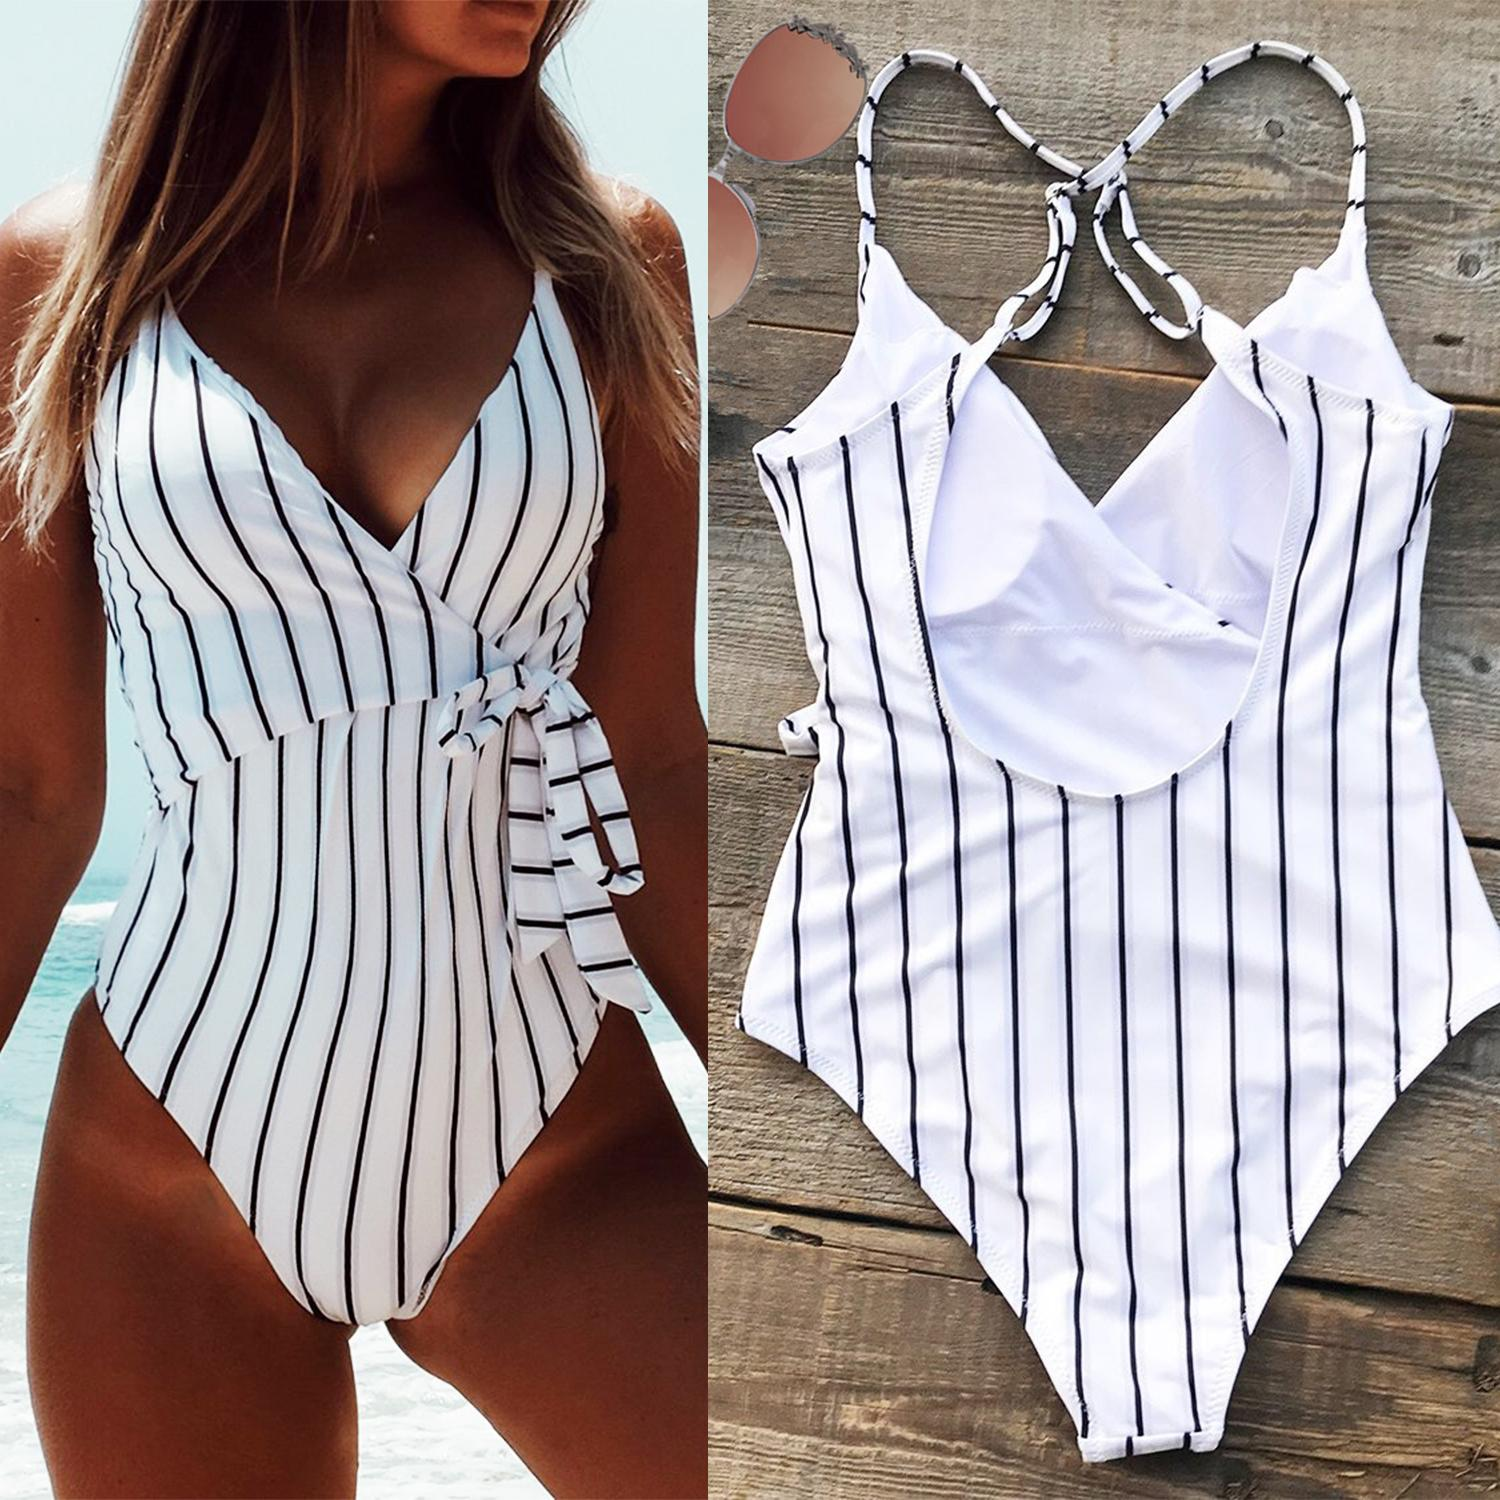 ff8b25f92e4 Stay Young Stripe One Piece Swimsuit Wrap Around Vertical Stripe One Piece  Swimsuit Classy Monokini Tie